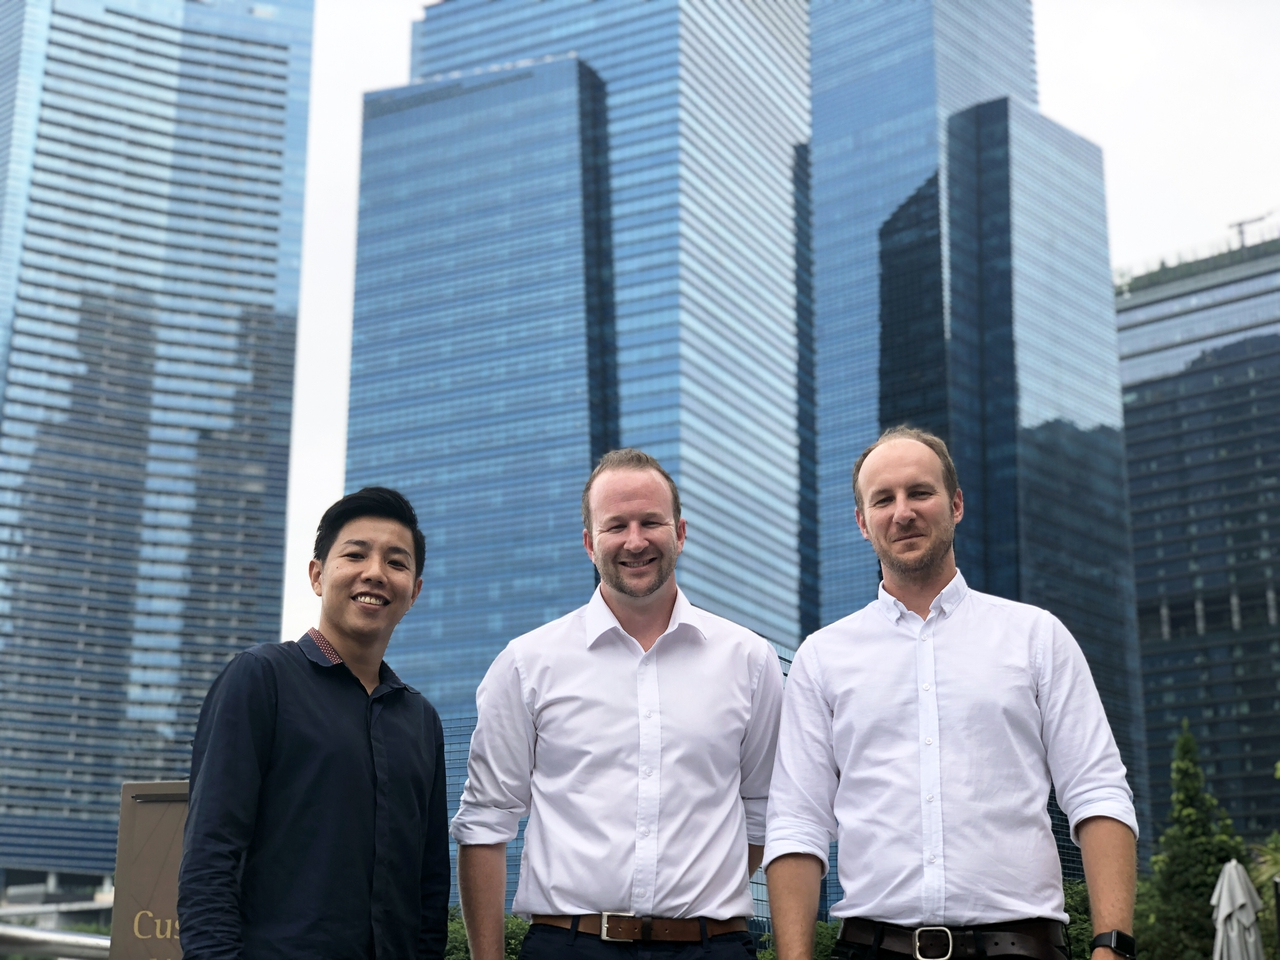 Kwok Zhong Li, David Boyd and Andrew Boyd in Singapore